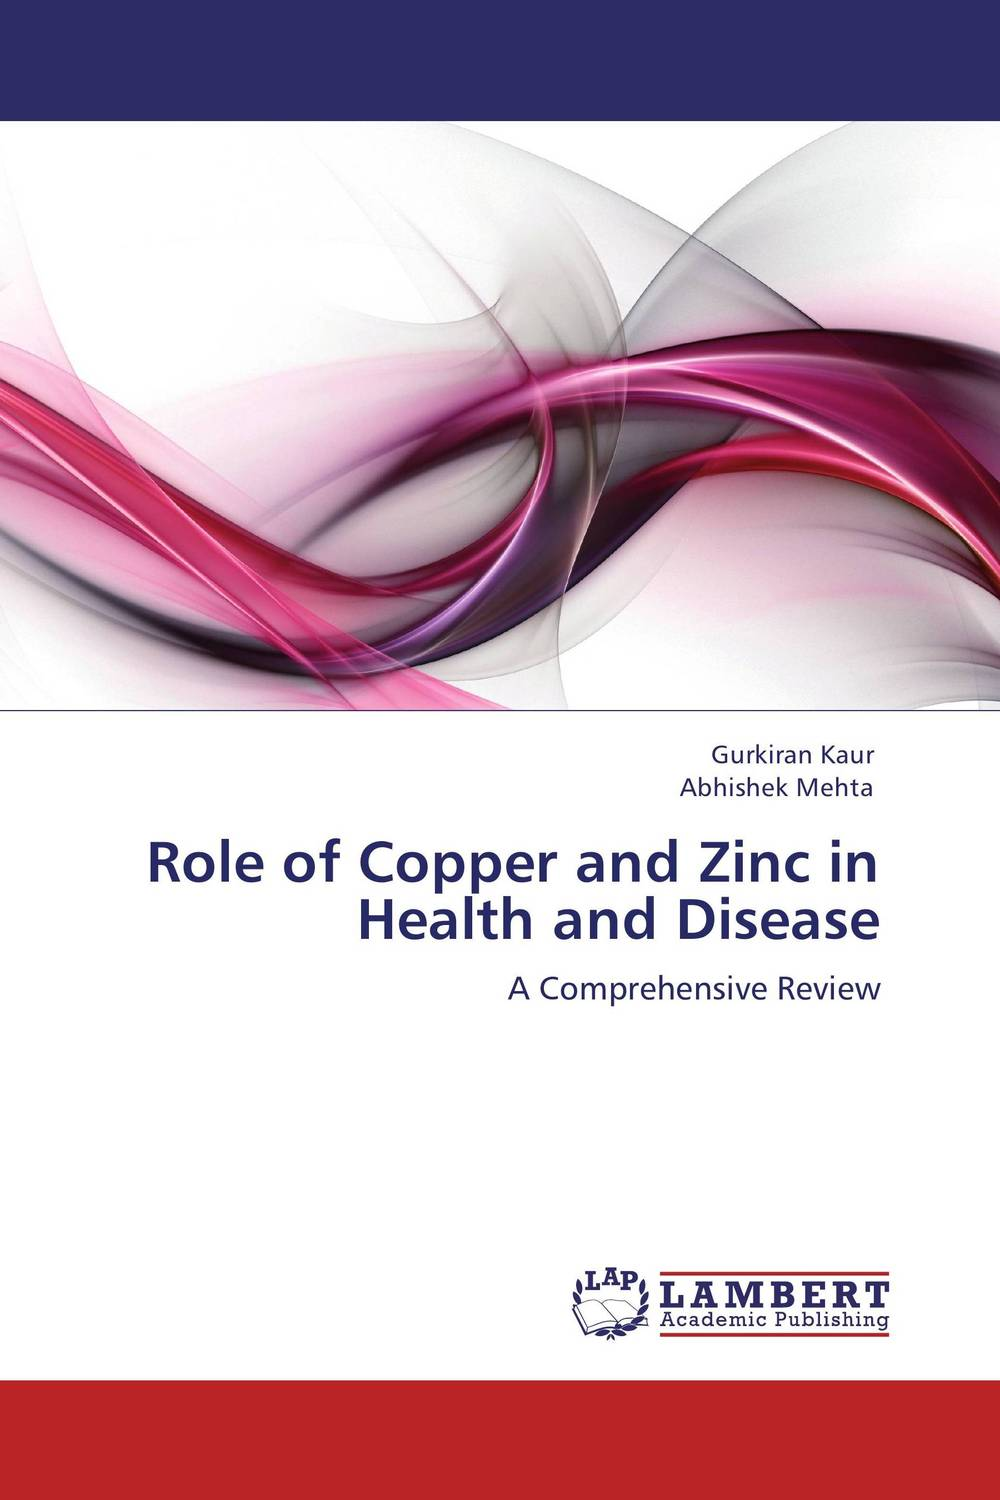 Role of Copper and Zinc in Health and Disease methods in enzymology chromatin and chromatin remodeling enzymes part a vol 375